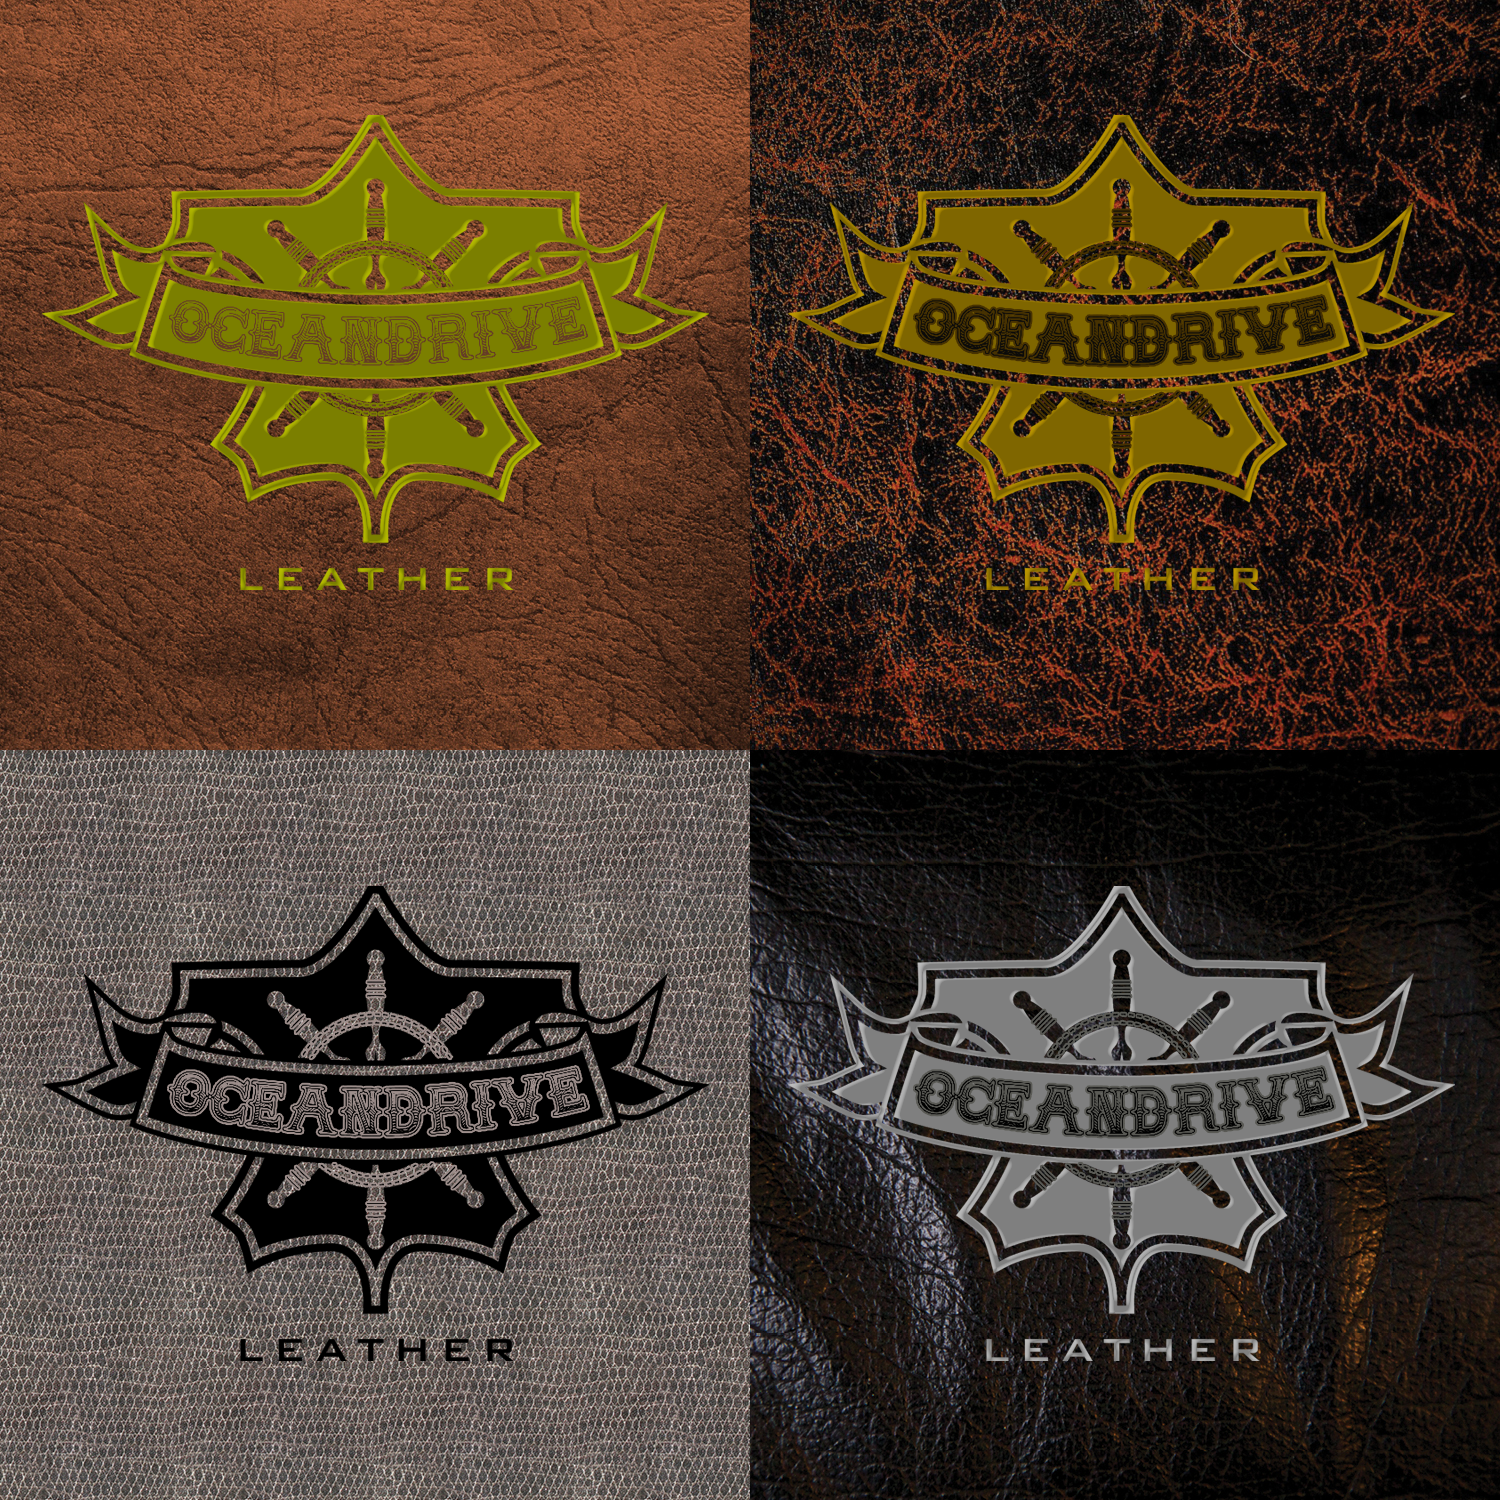 Logo Design by ISaac Law - Entry No. 45 in the Logo Design Contest Captivating Logo Design for Oceandrive Leather.